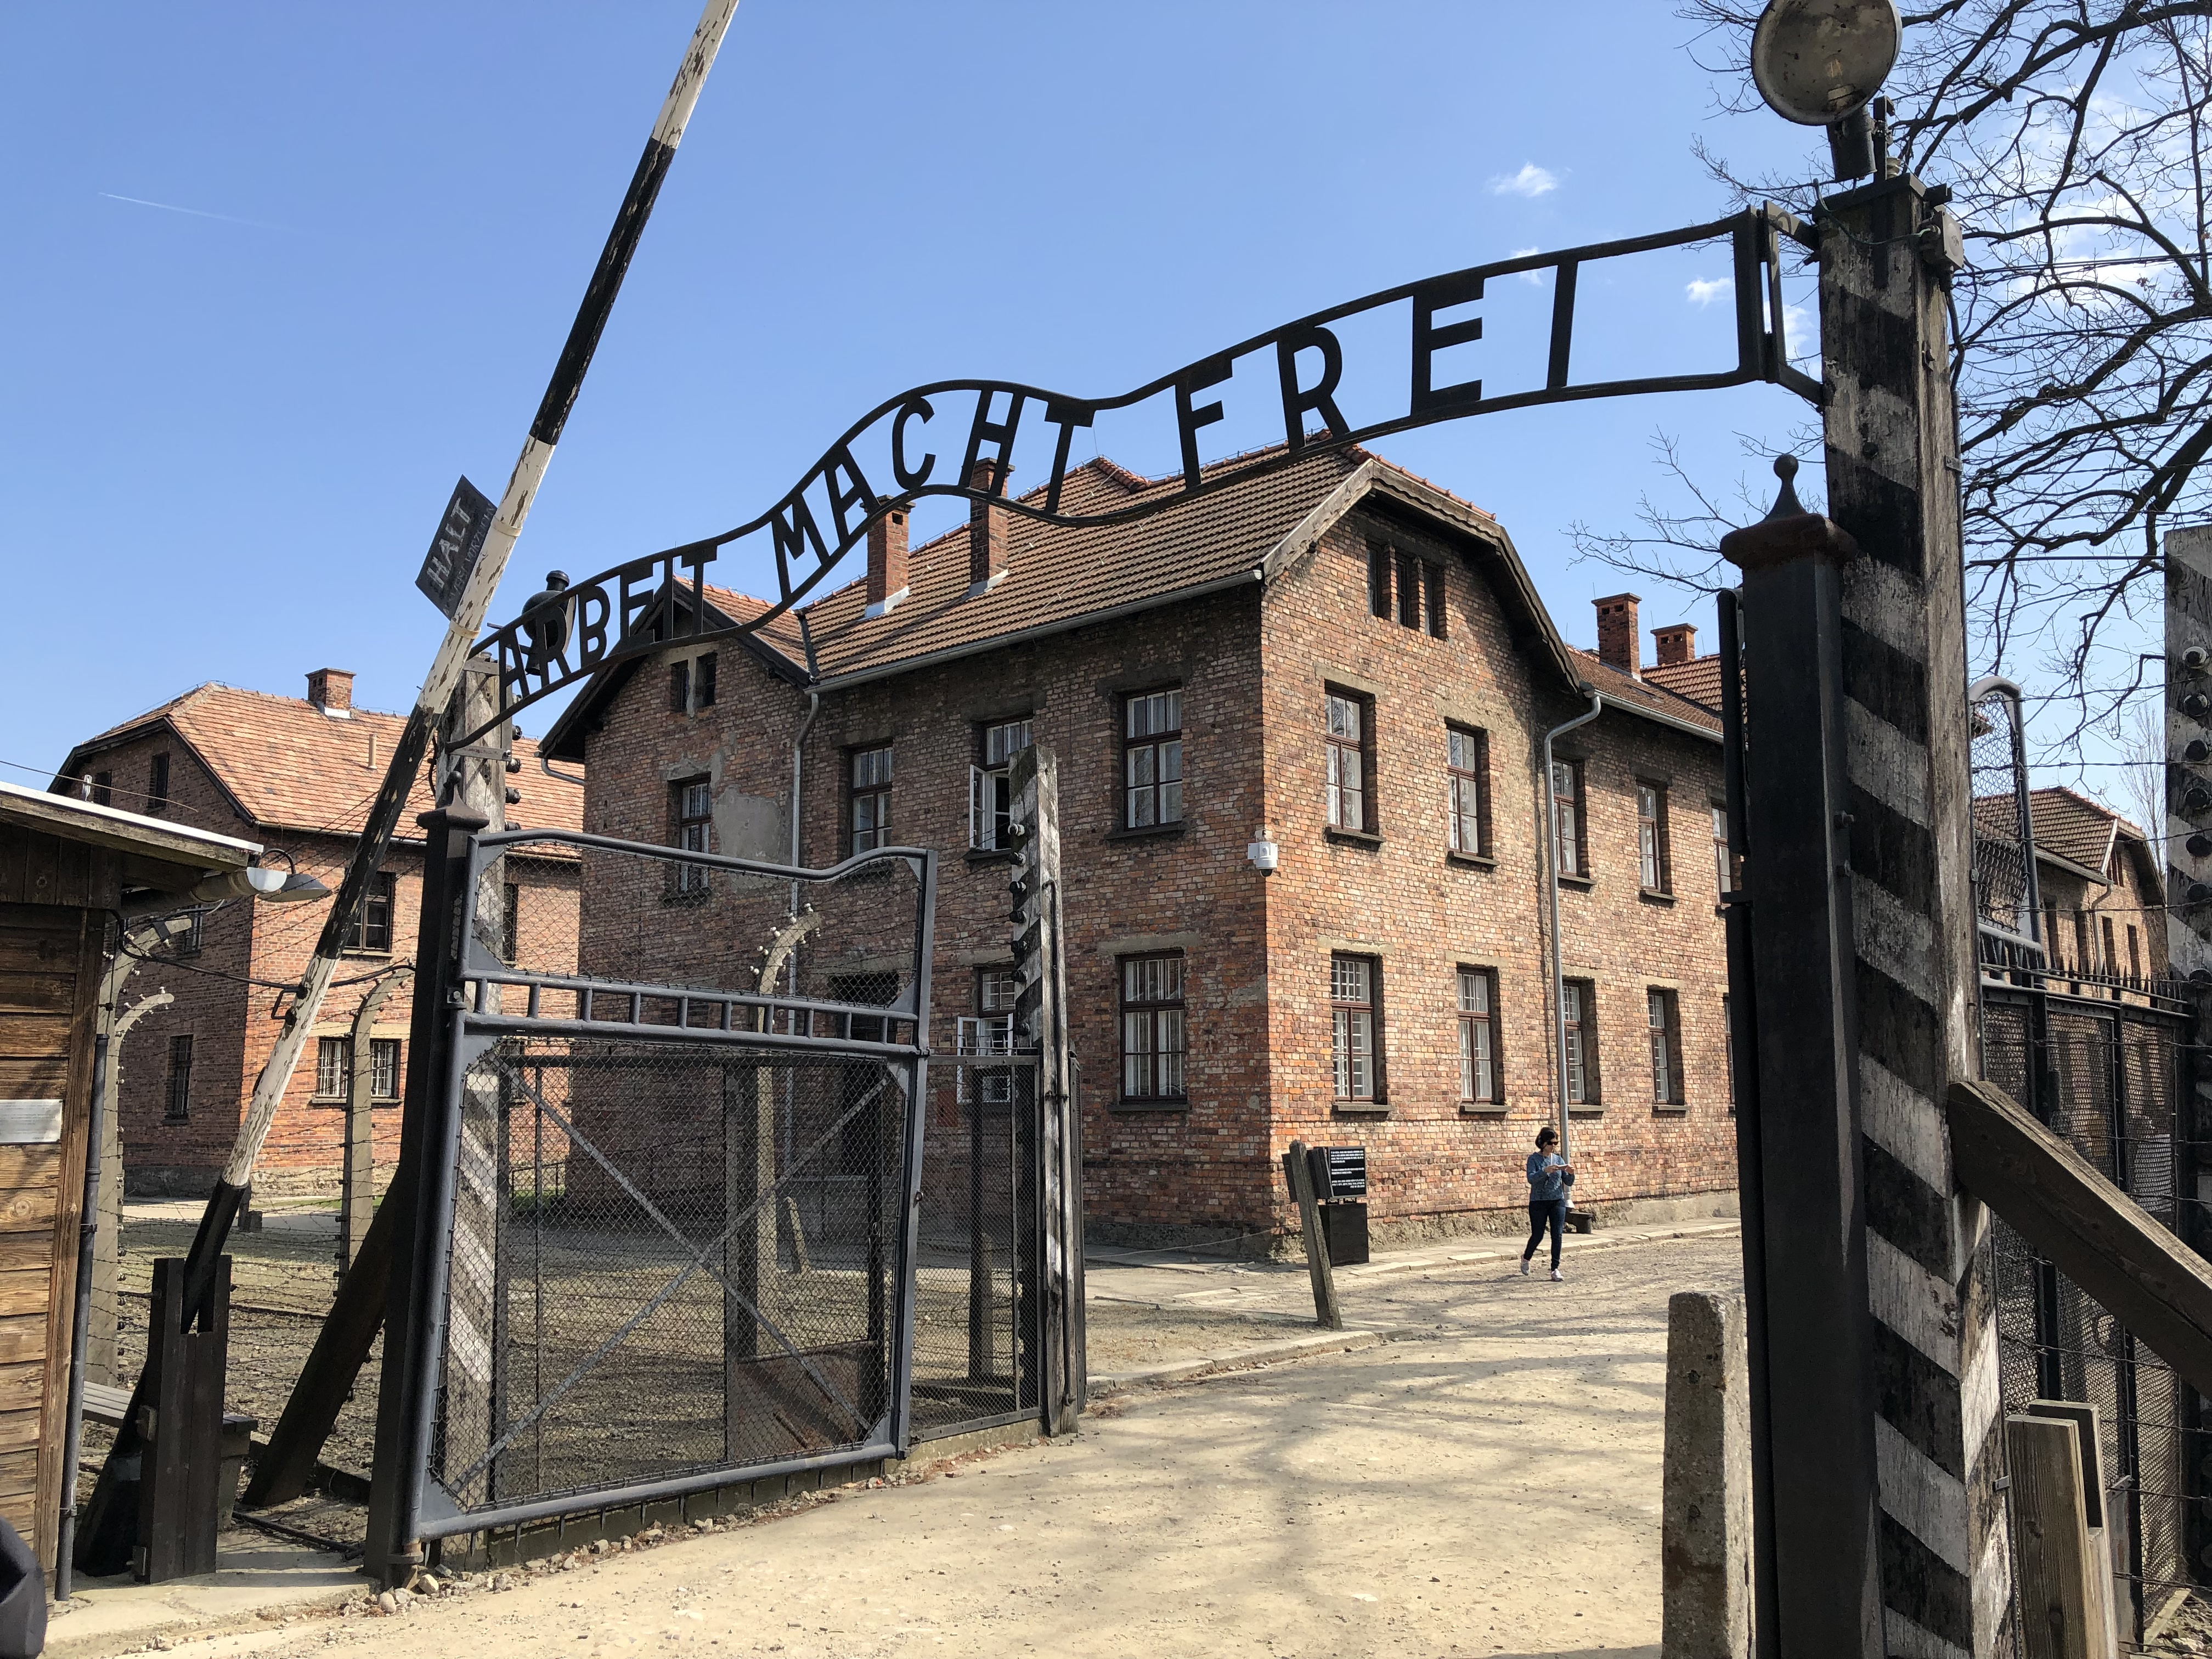 Arbeit macht frei is a German phrase meaning work sets youfree